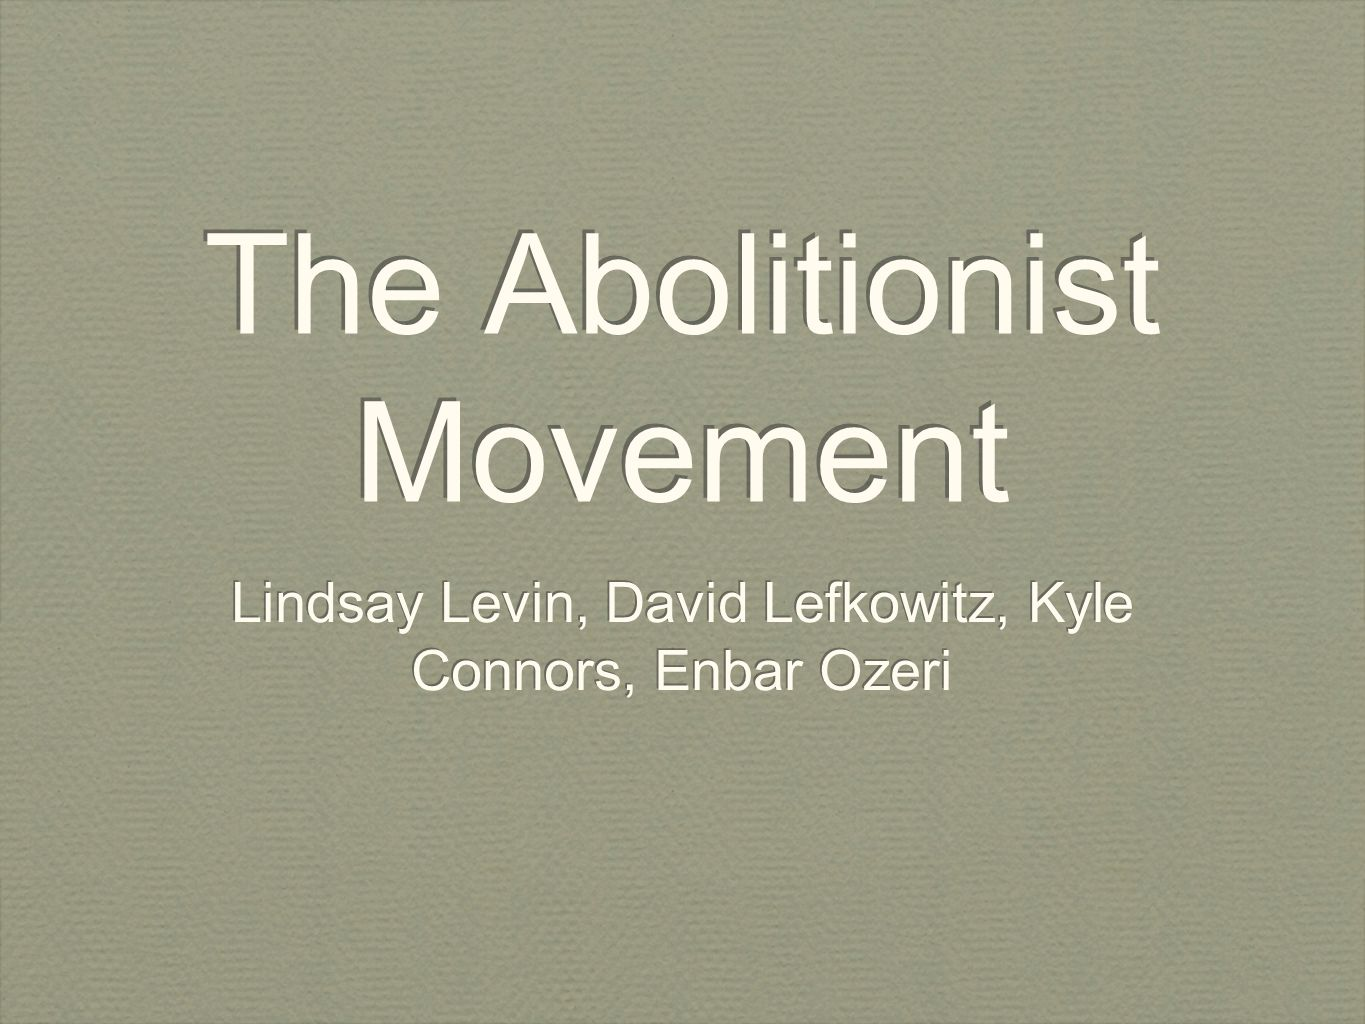 The Abolitionist Movement Lindsay Levin, David Lefkowitz, Kyle Connors, Enbar Ozeri